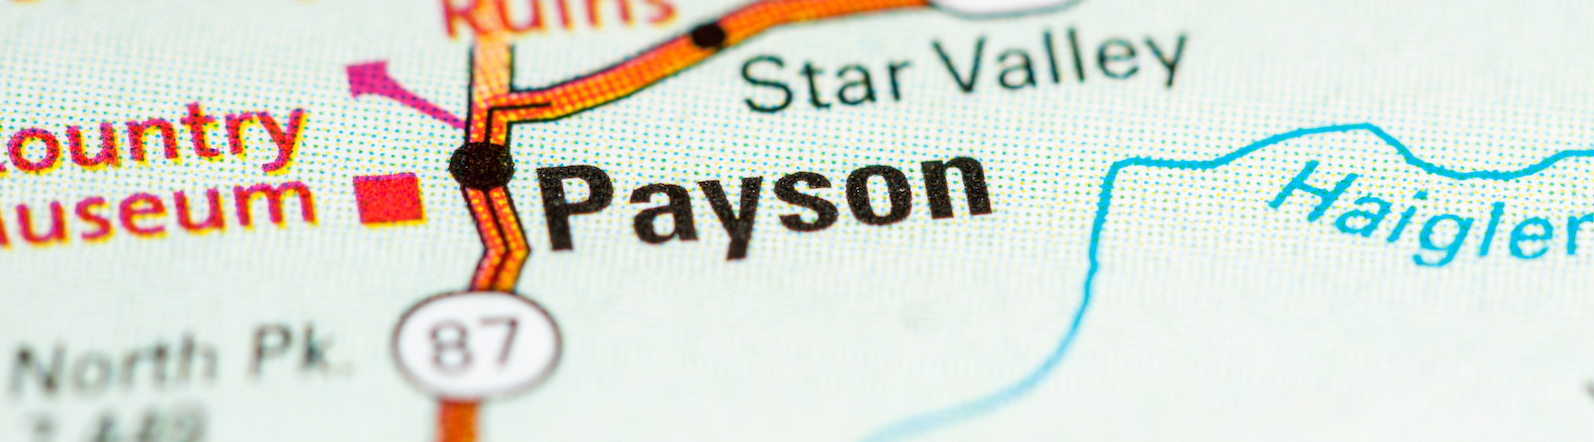 Town of Payson, Arizona on a map